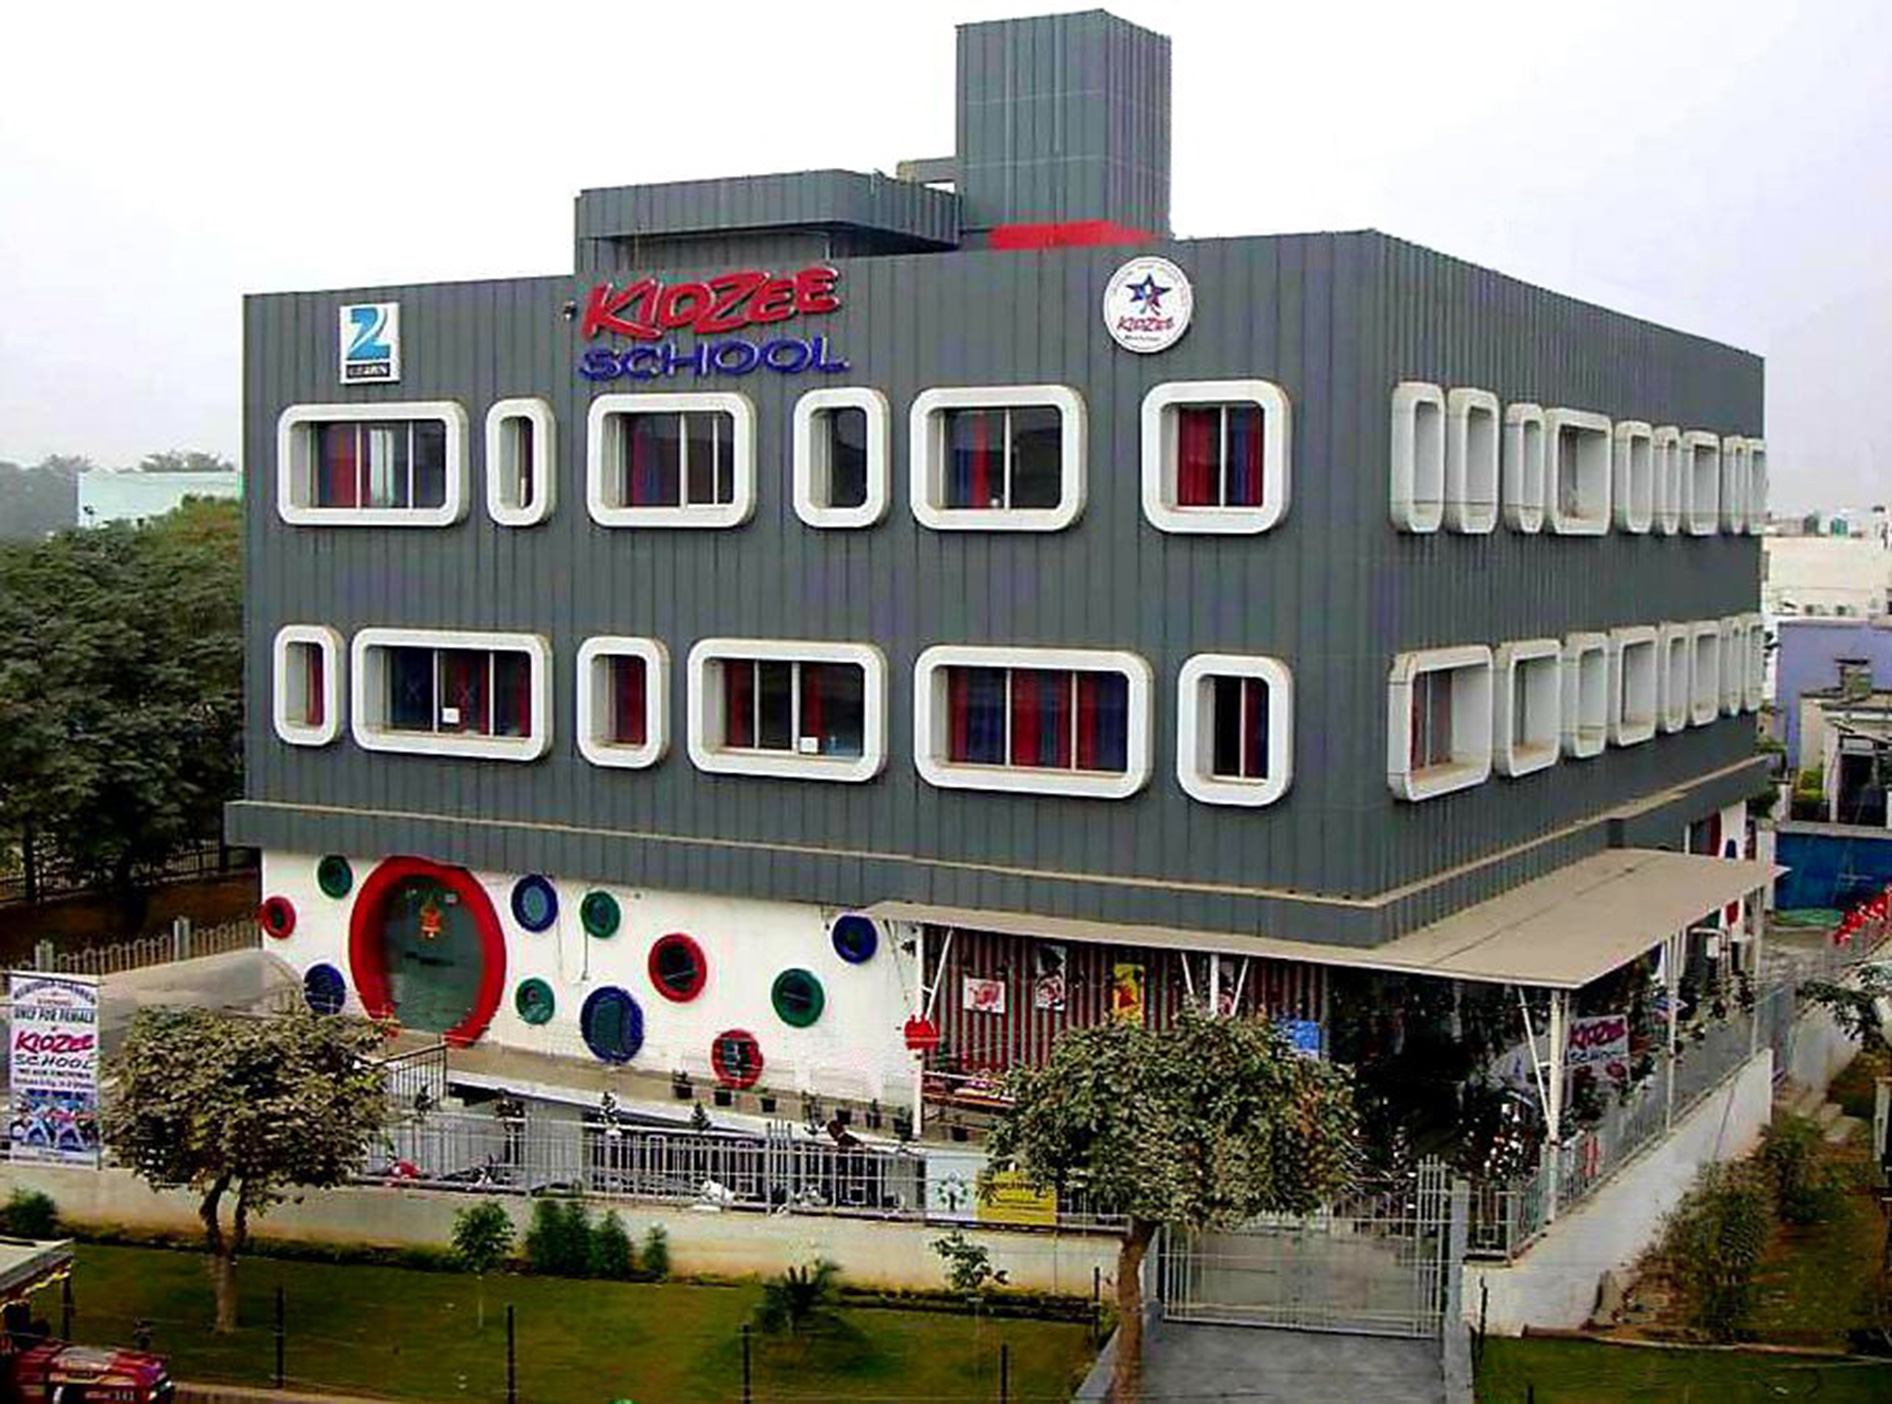 Kidzee School by Cityspace'82 Architects - Projects, Institutional Design,  School Design - Commerical Design India